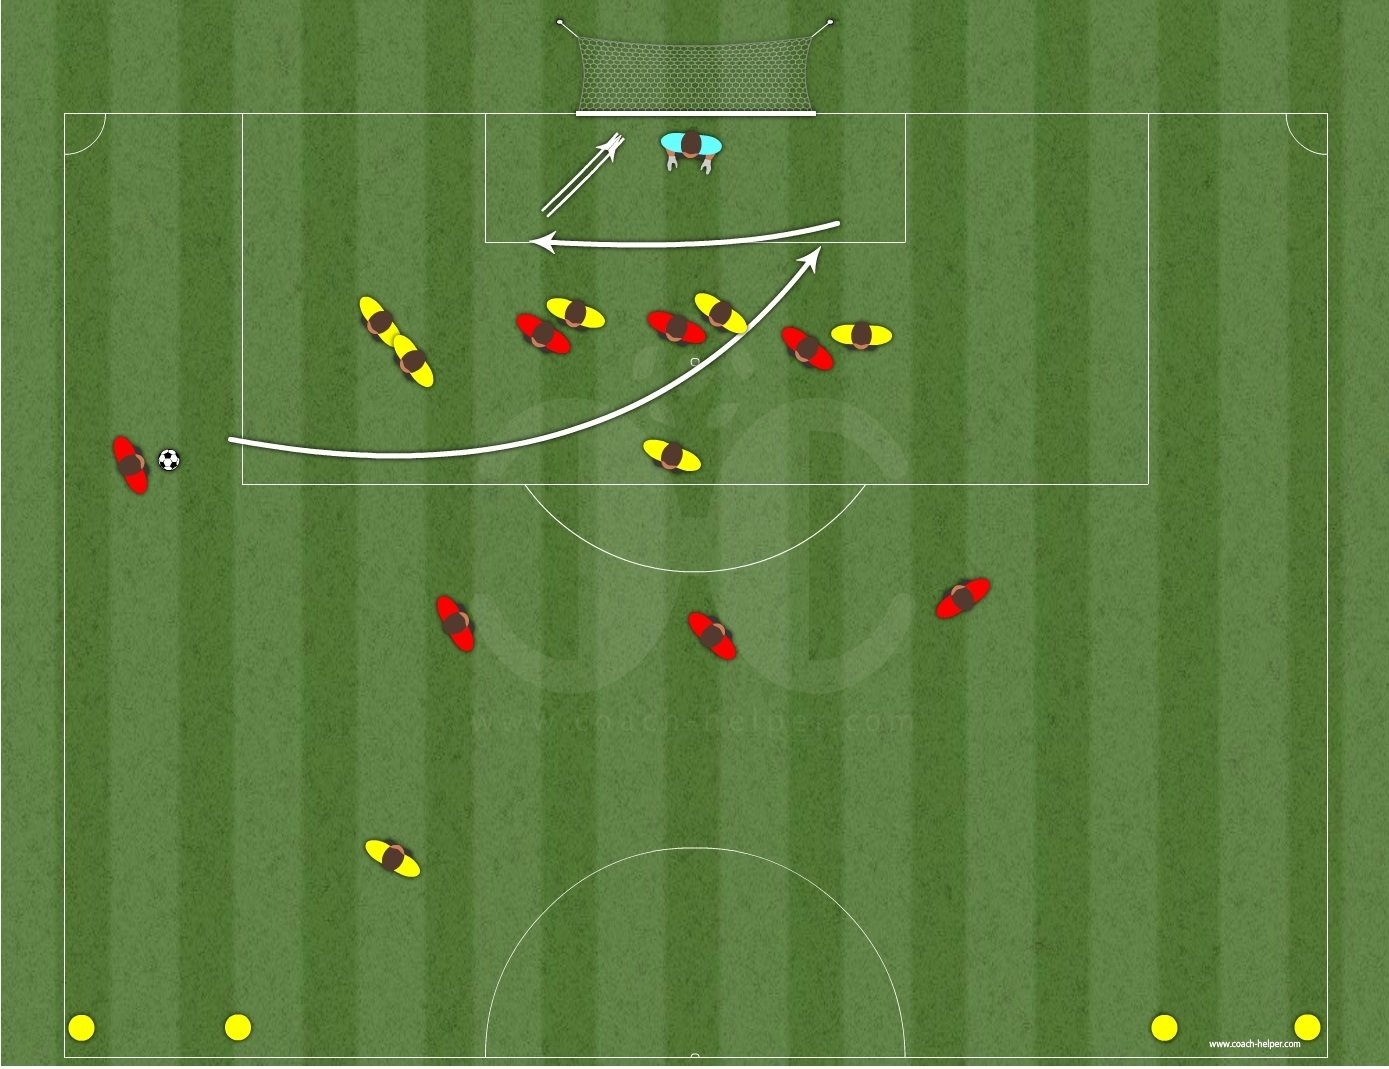 Digital Collection 2 - 100 drills Soccer